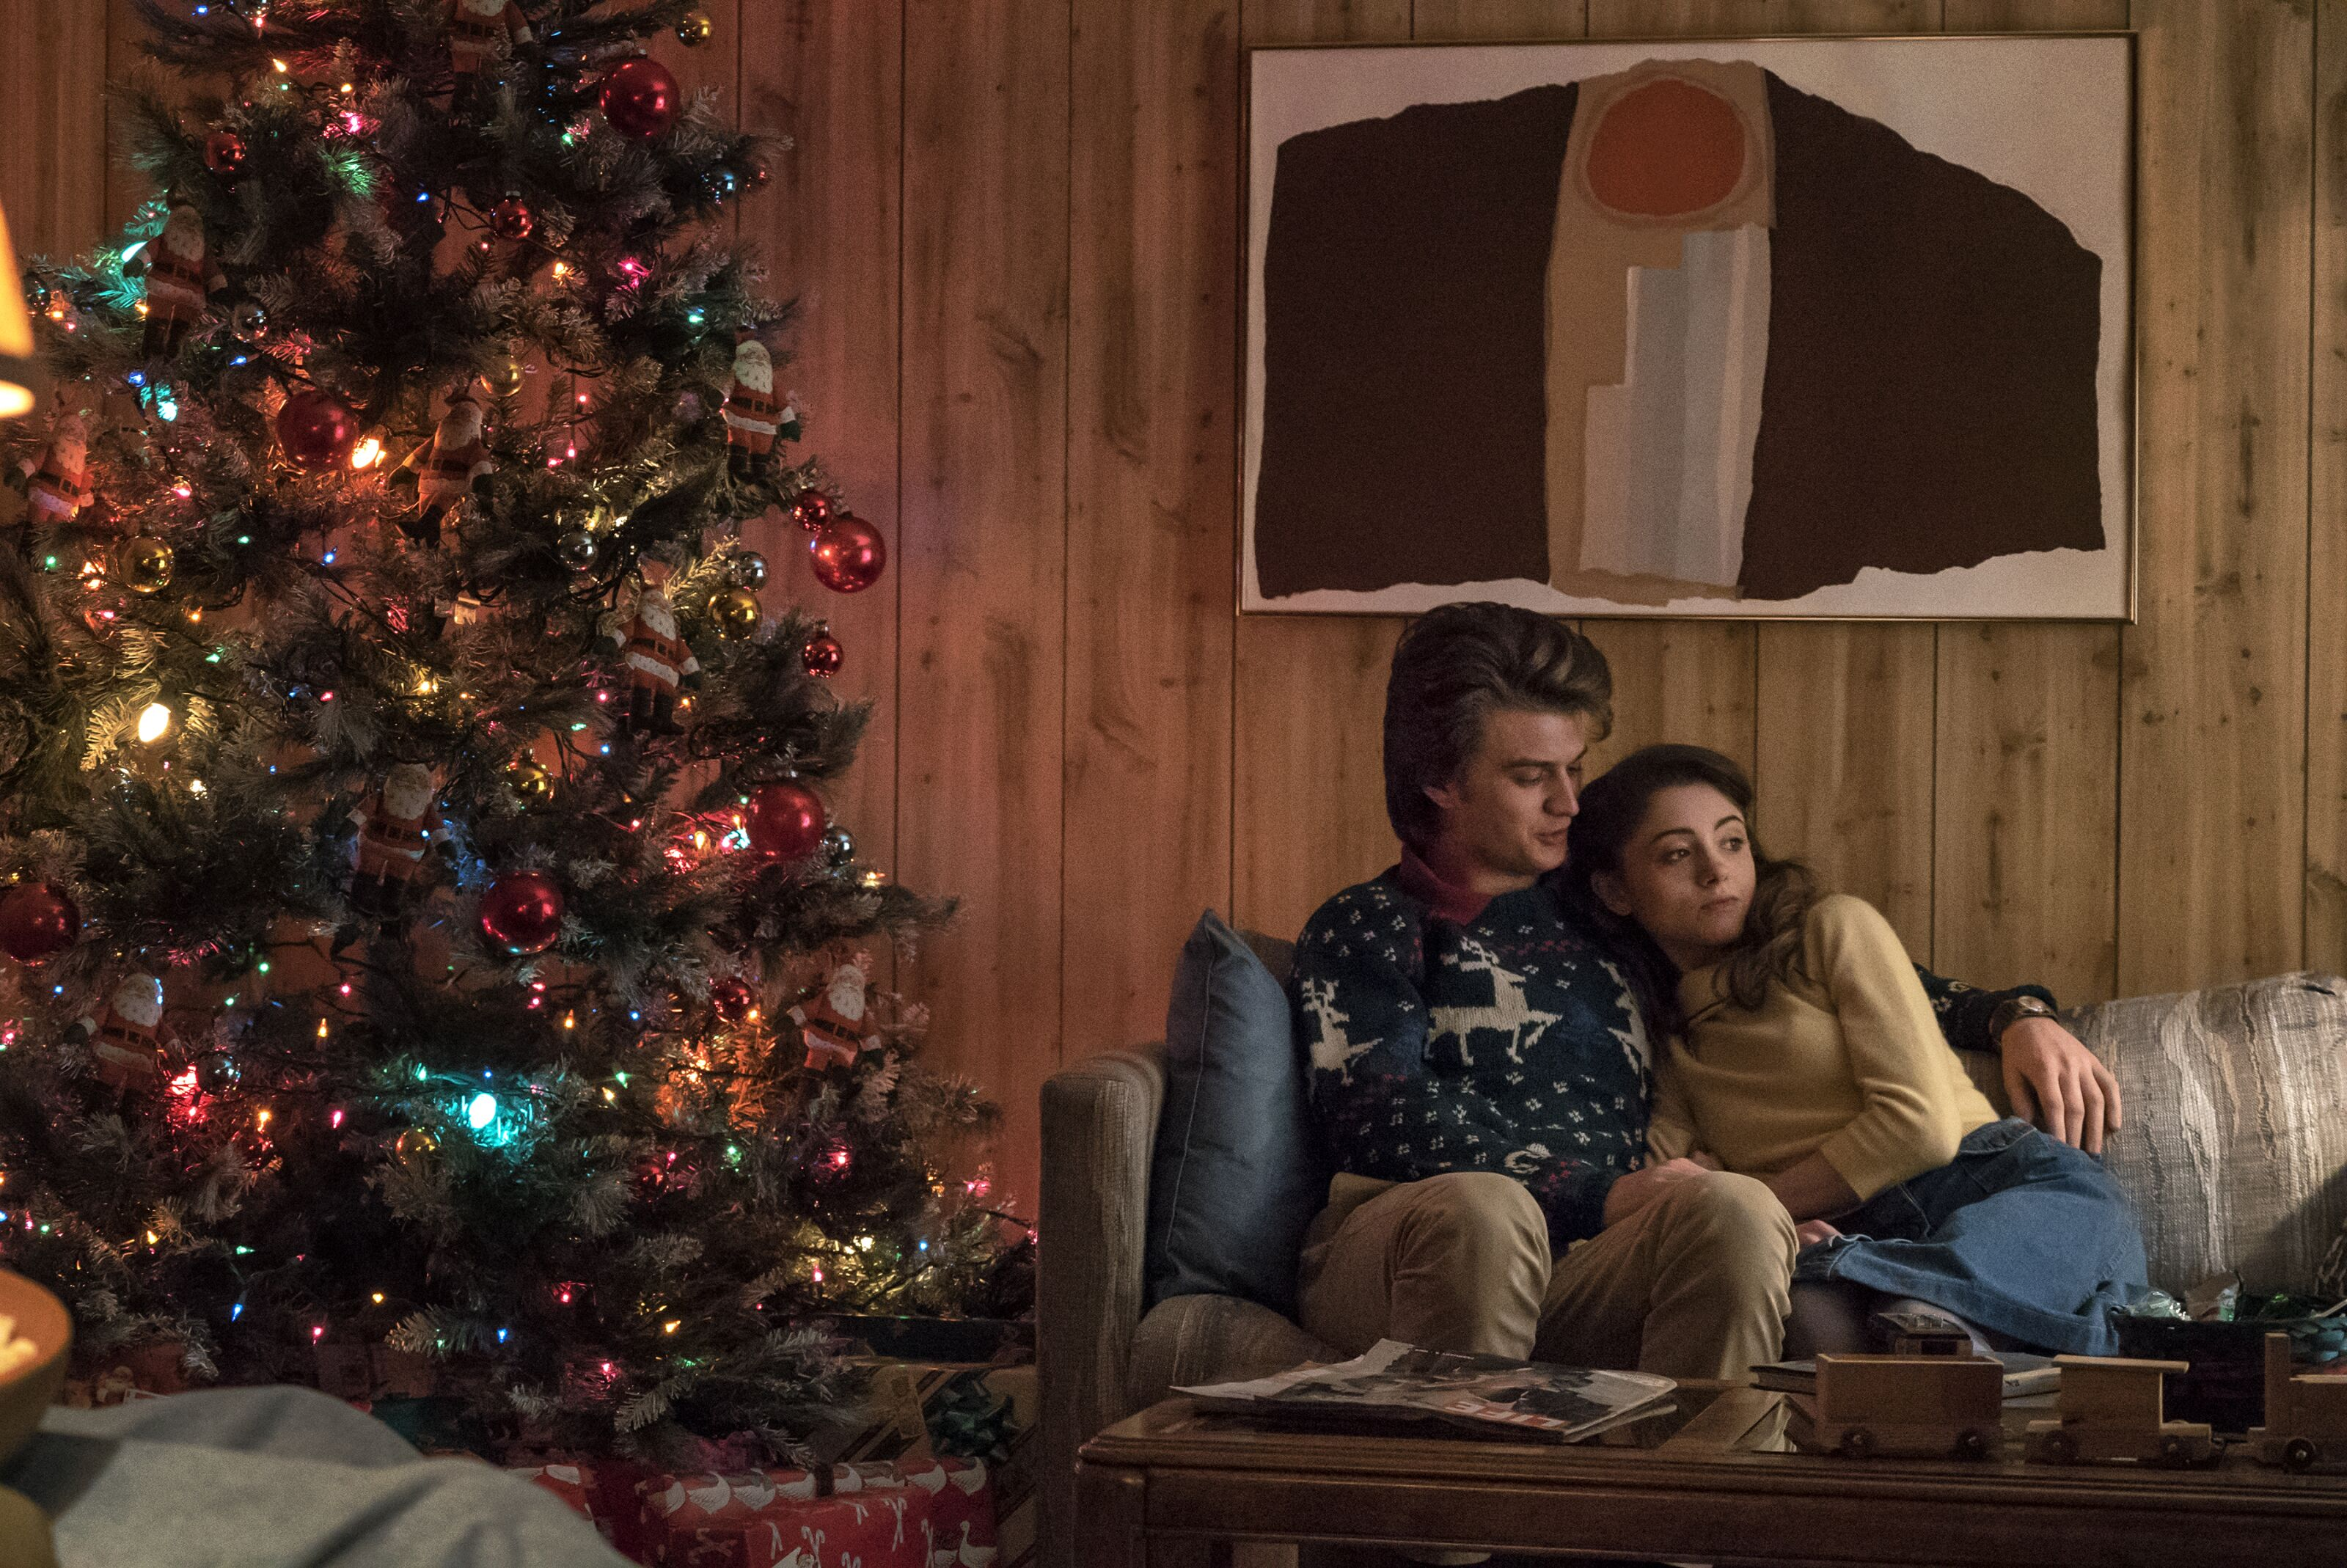 A Stranger Things Christmas.Stranger Things Needs A Netflix Christmas Special